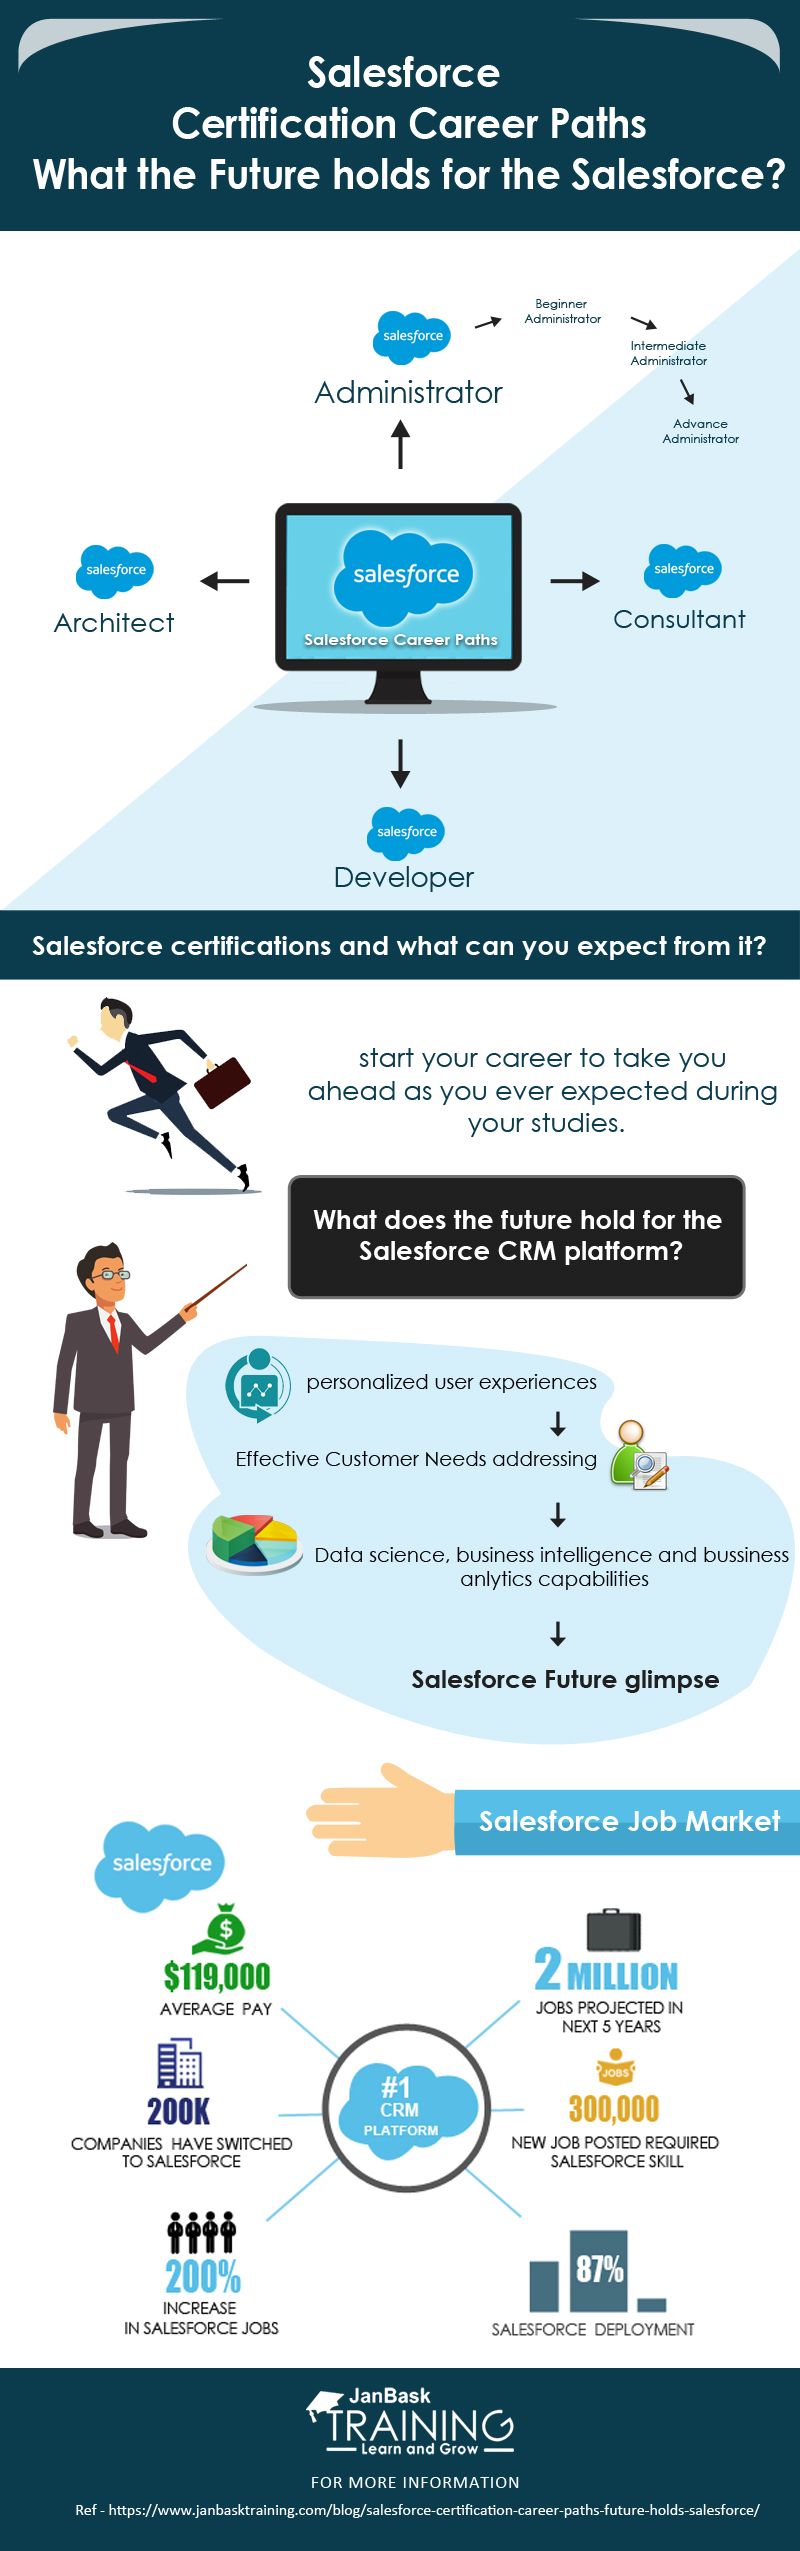 salesforce certification career path